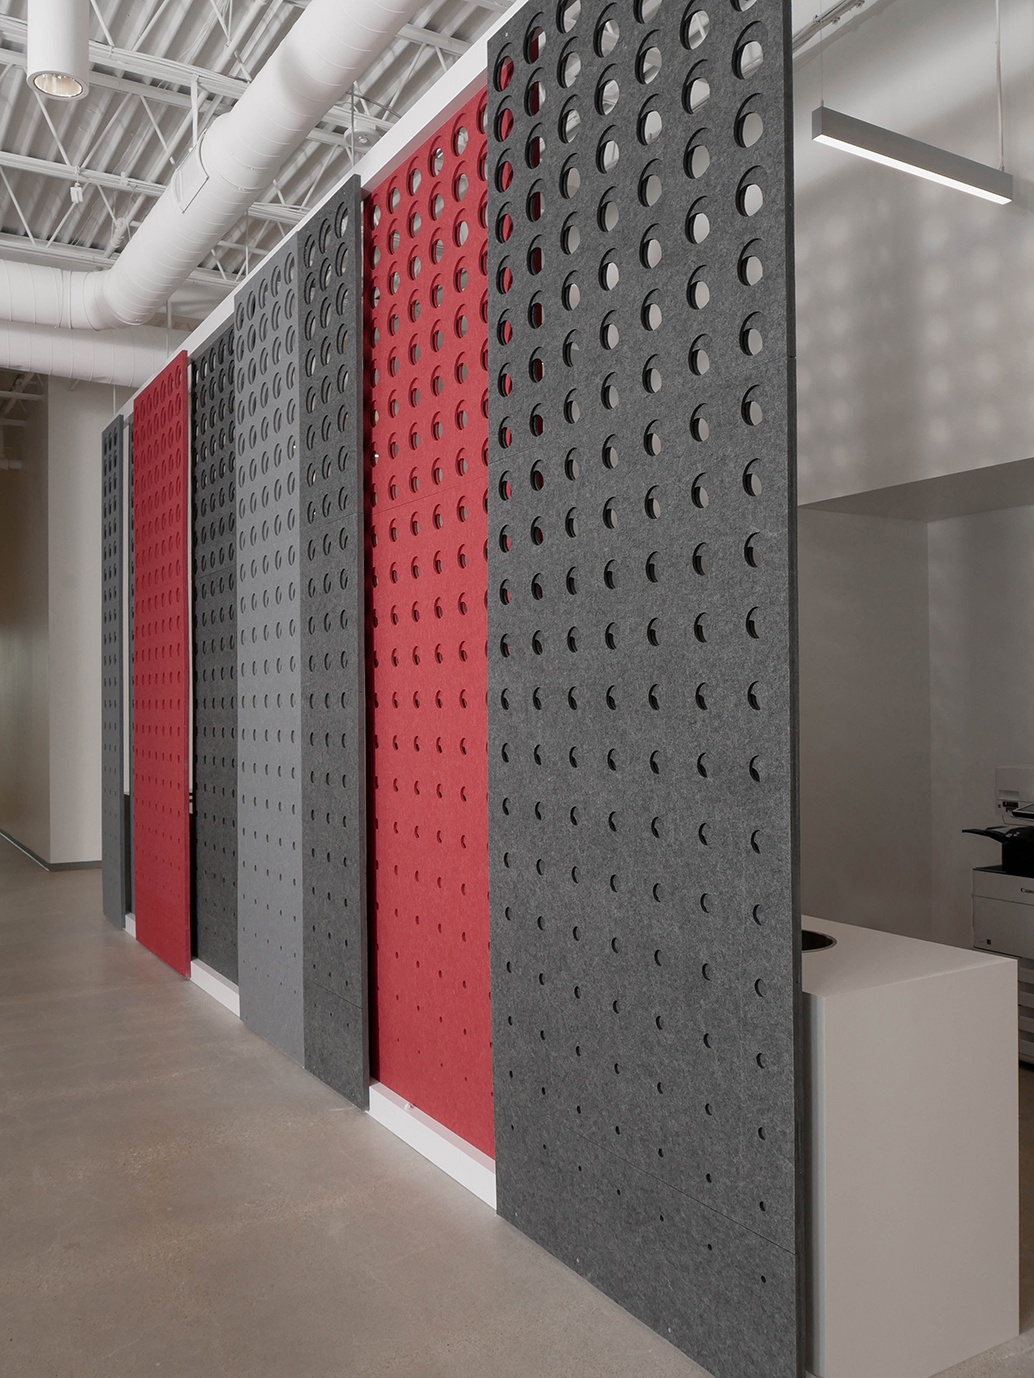 Seen here are the PANL walls from Fräsch which create a visual and acoustical division for your space.